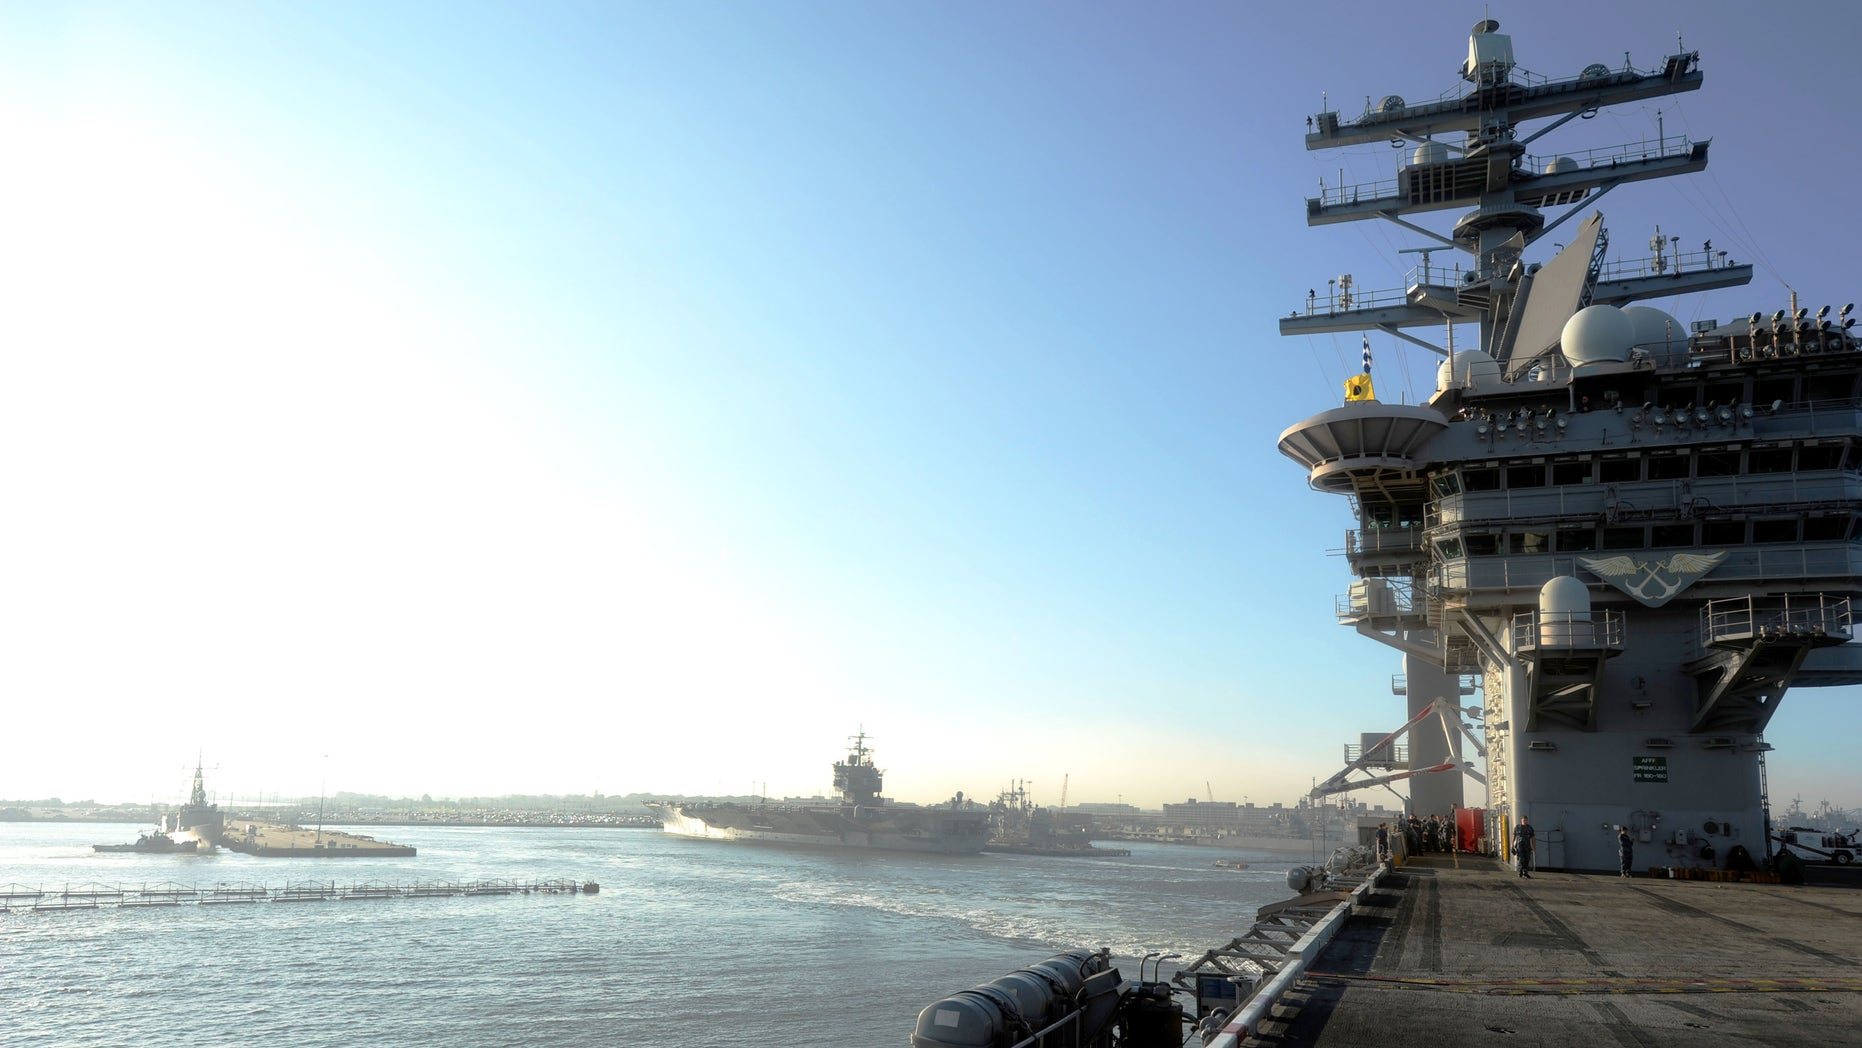 Aug. 25, 2011: The aircraft carrier USS Dwight D. Eisenhower departs Naval Station ahead of the possible landing of Hurricane Irene.